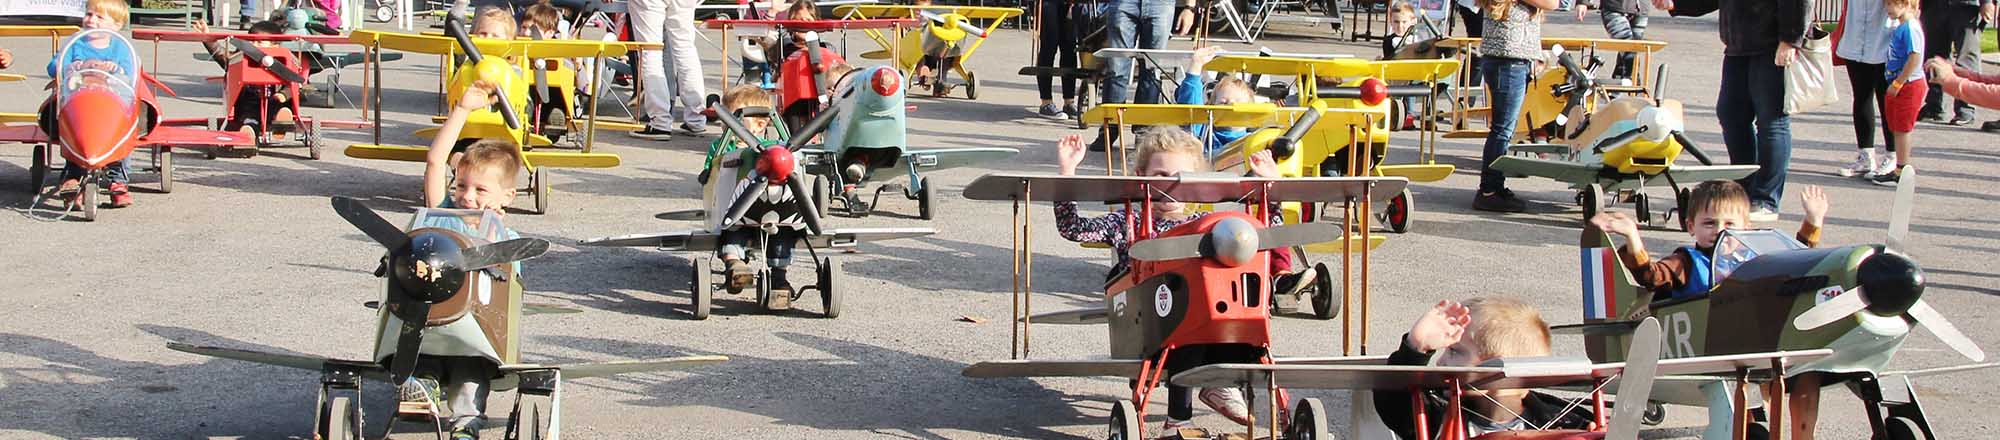 Aviation Day 2017 news pedal planes slider.jpg